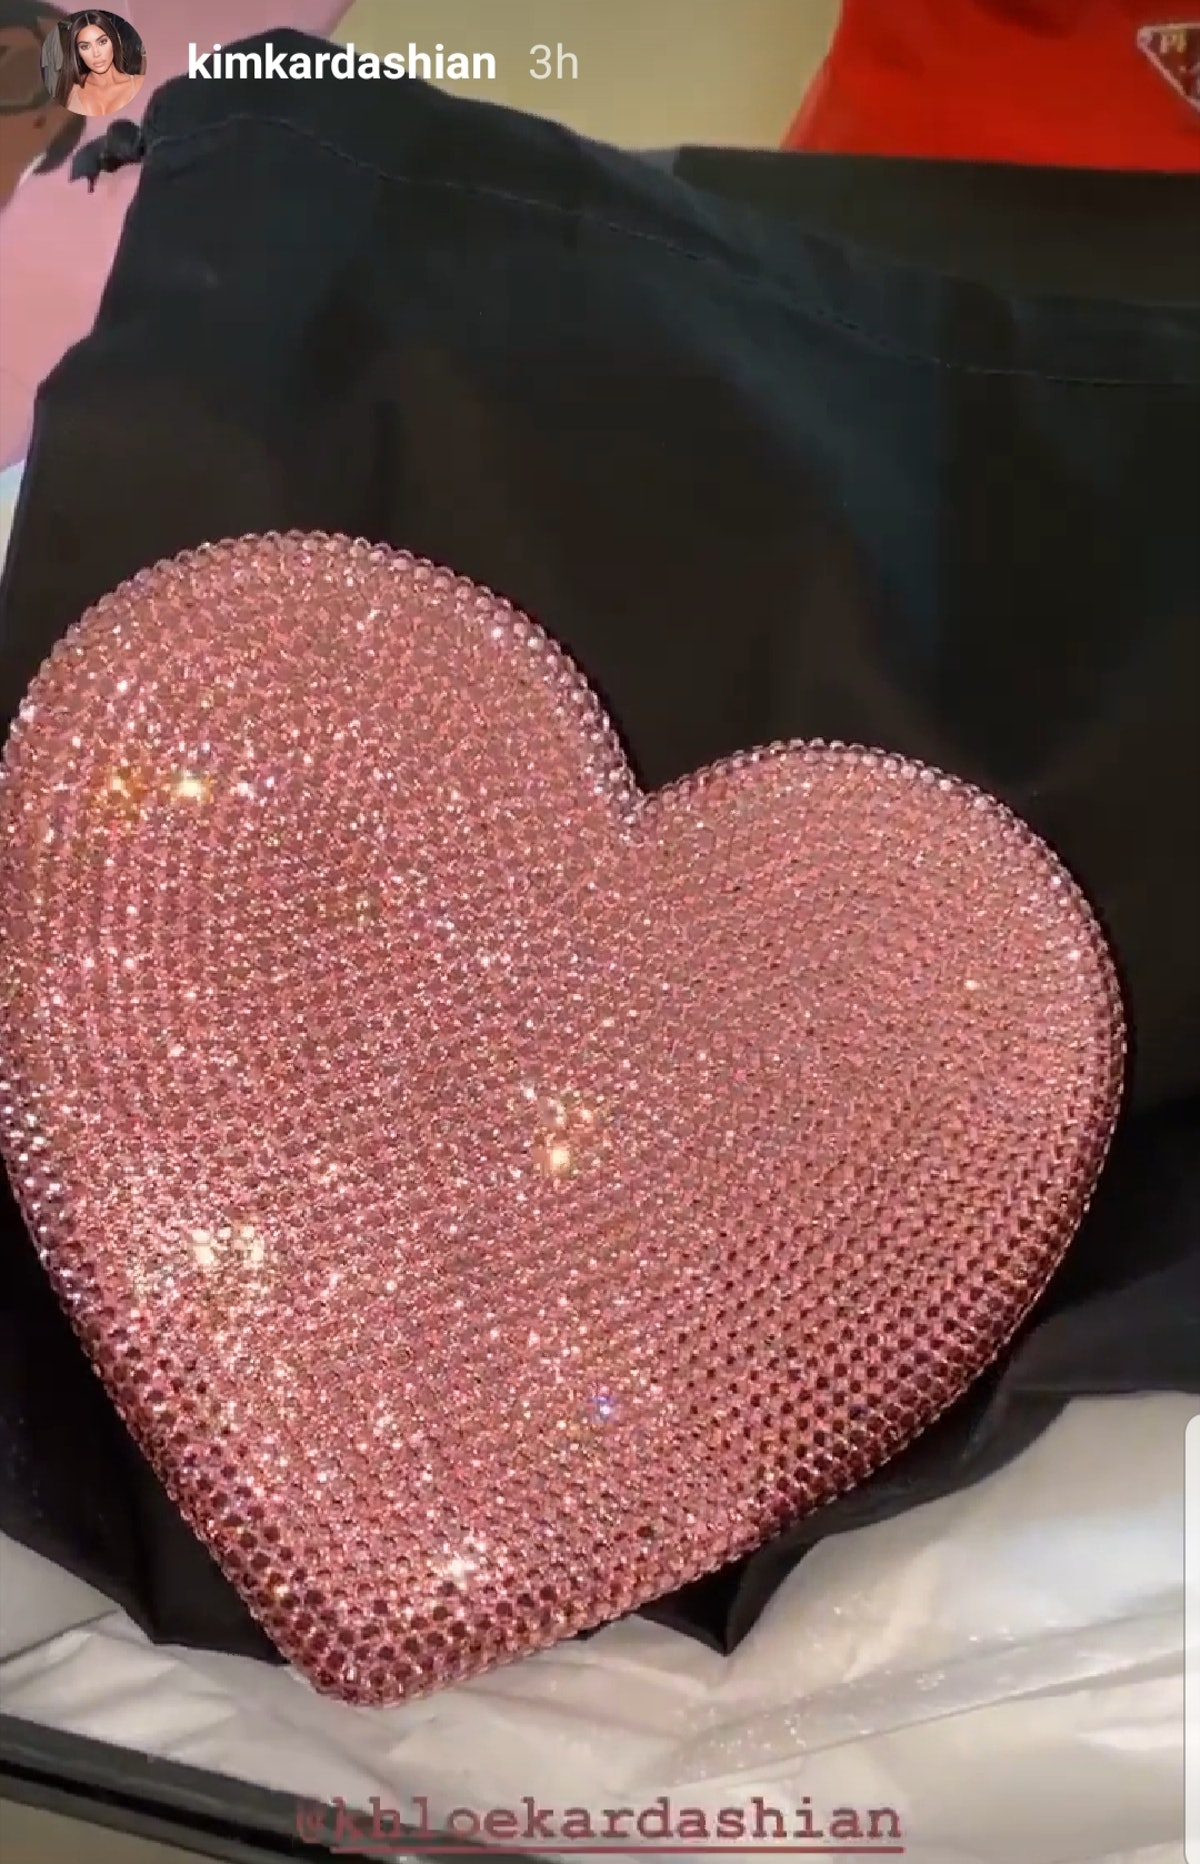 Khloé Kardashian's 2020 Valentine's day gifts for Kim were wrapped in Kanye West paper.